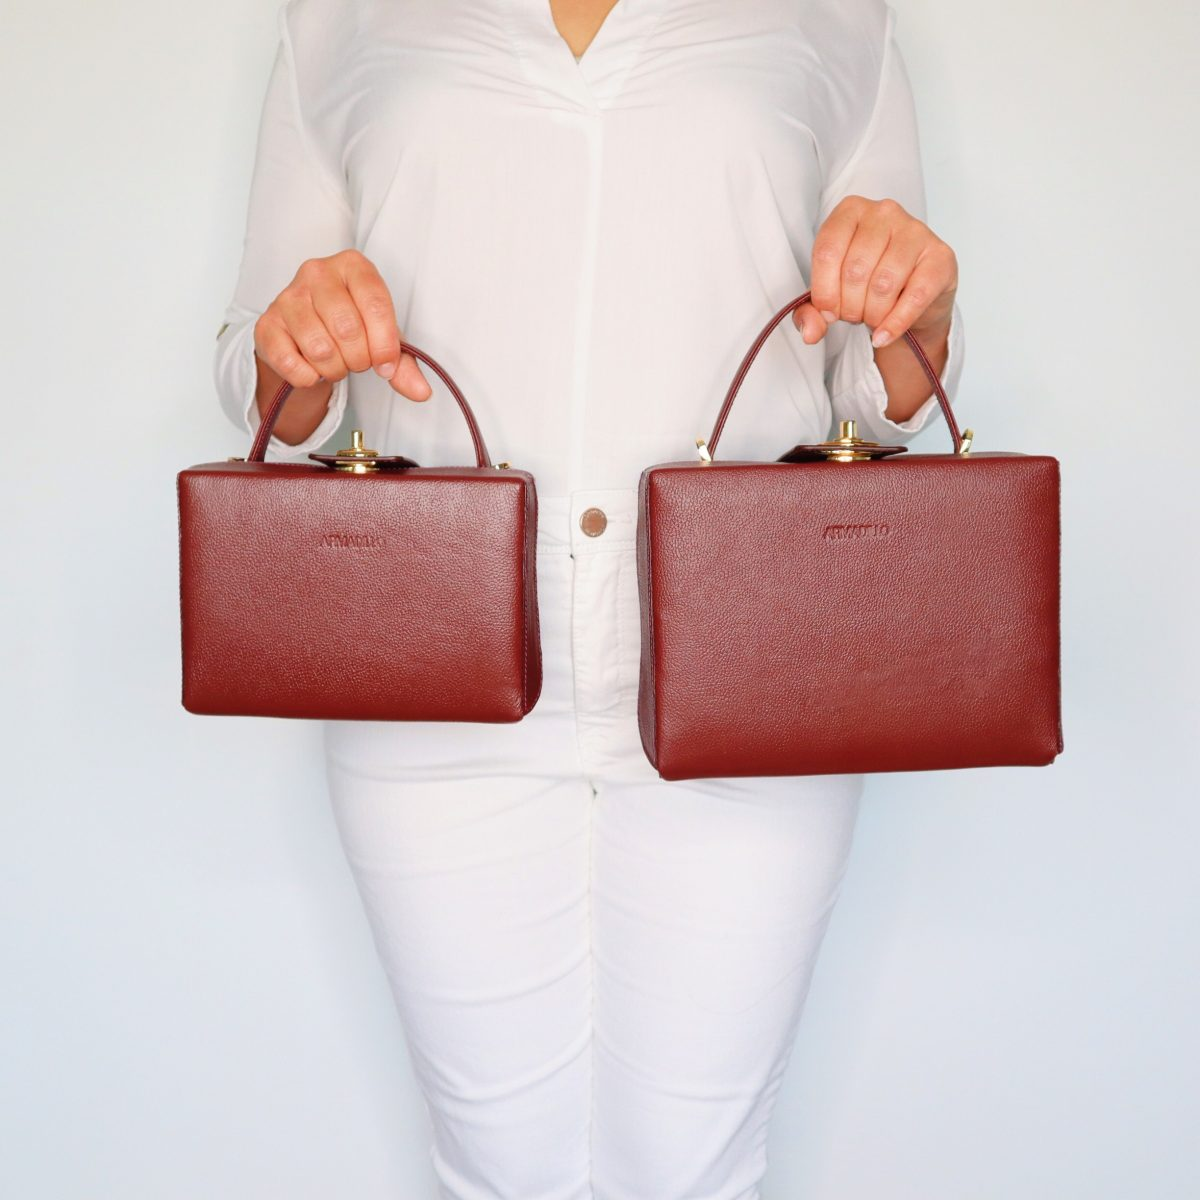 briefcase_box_bag_burgundy_grace_kelly_